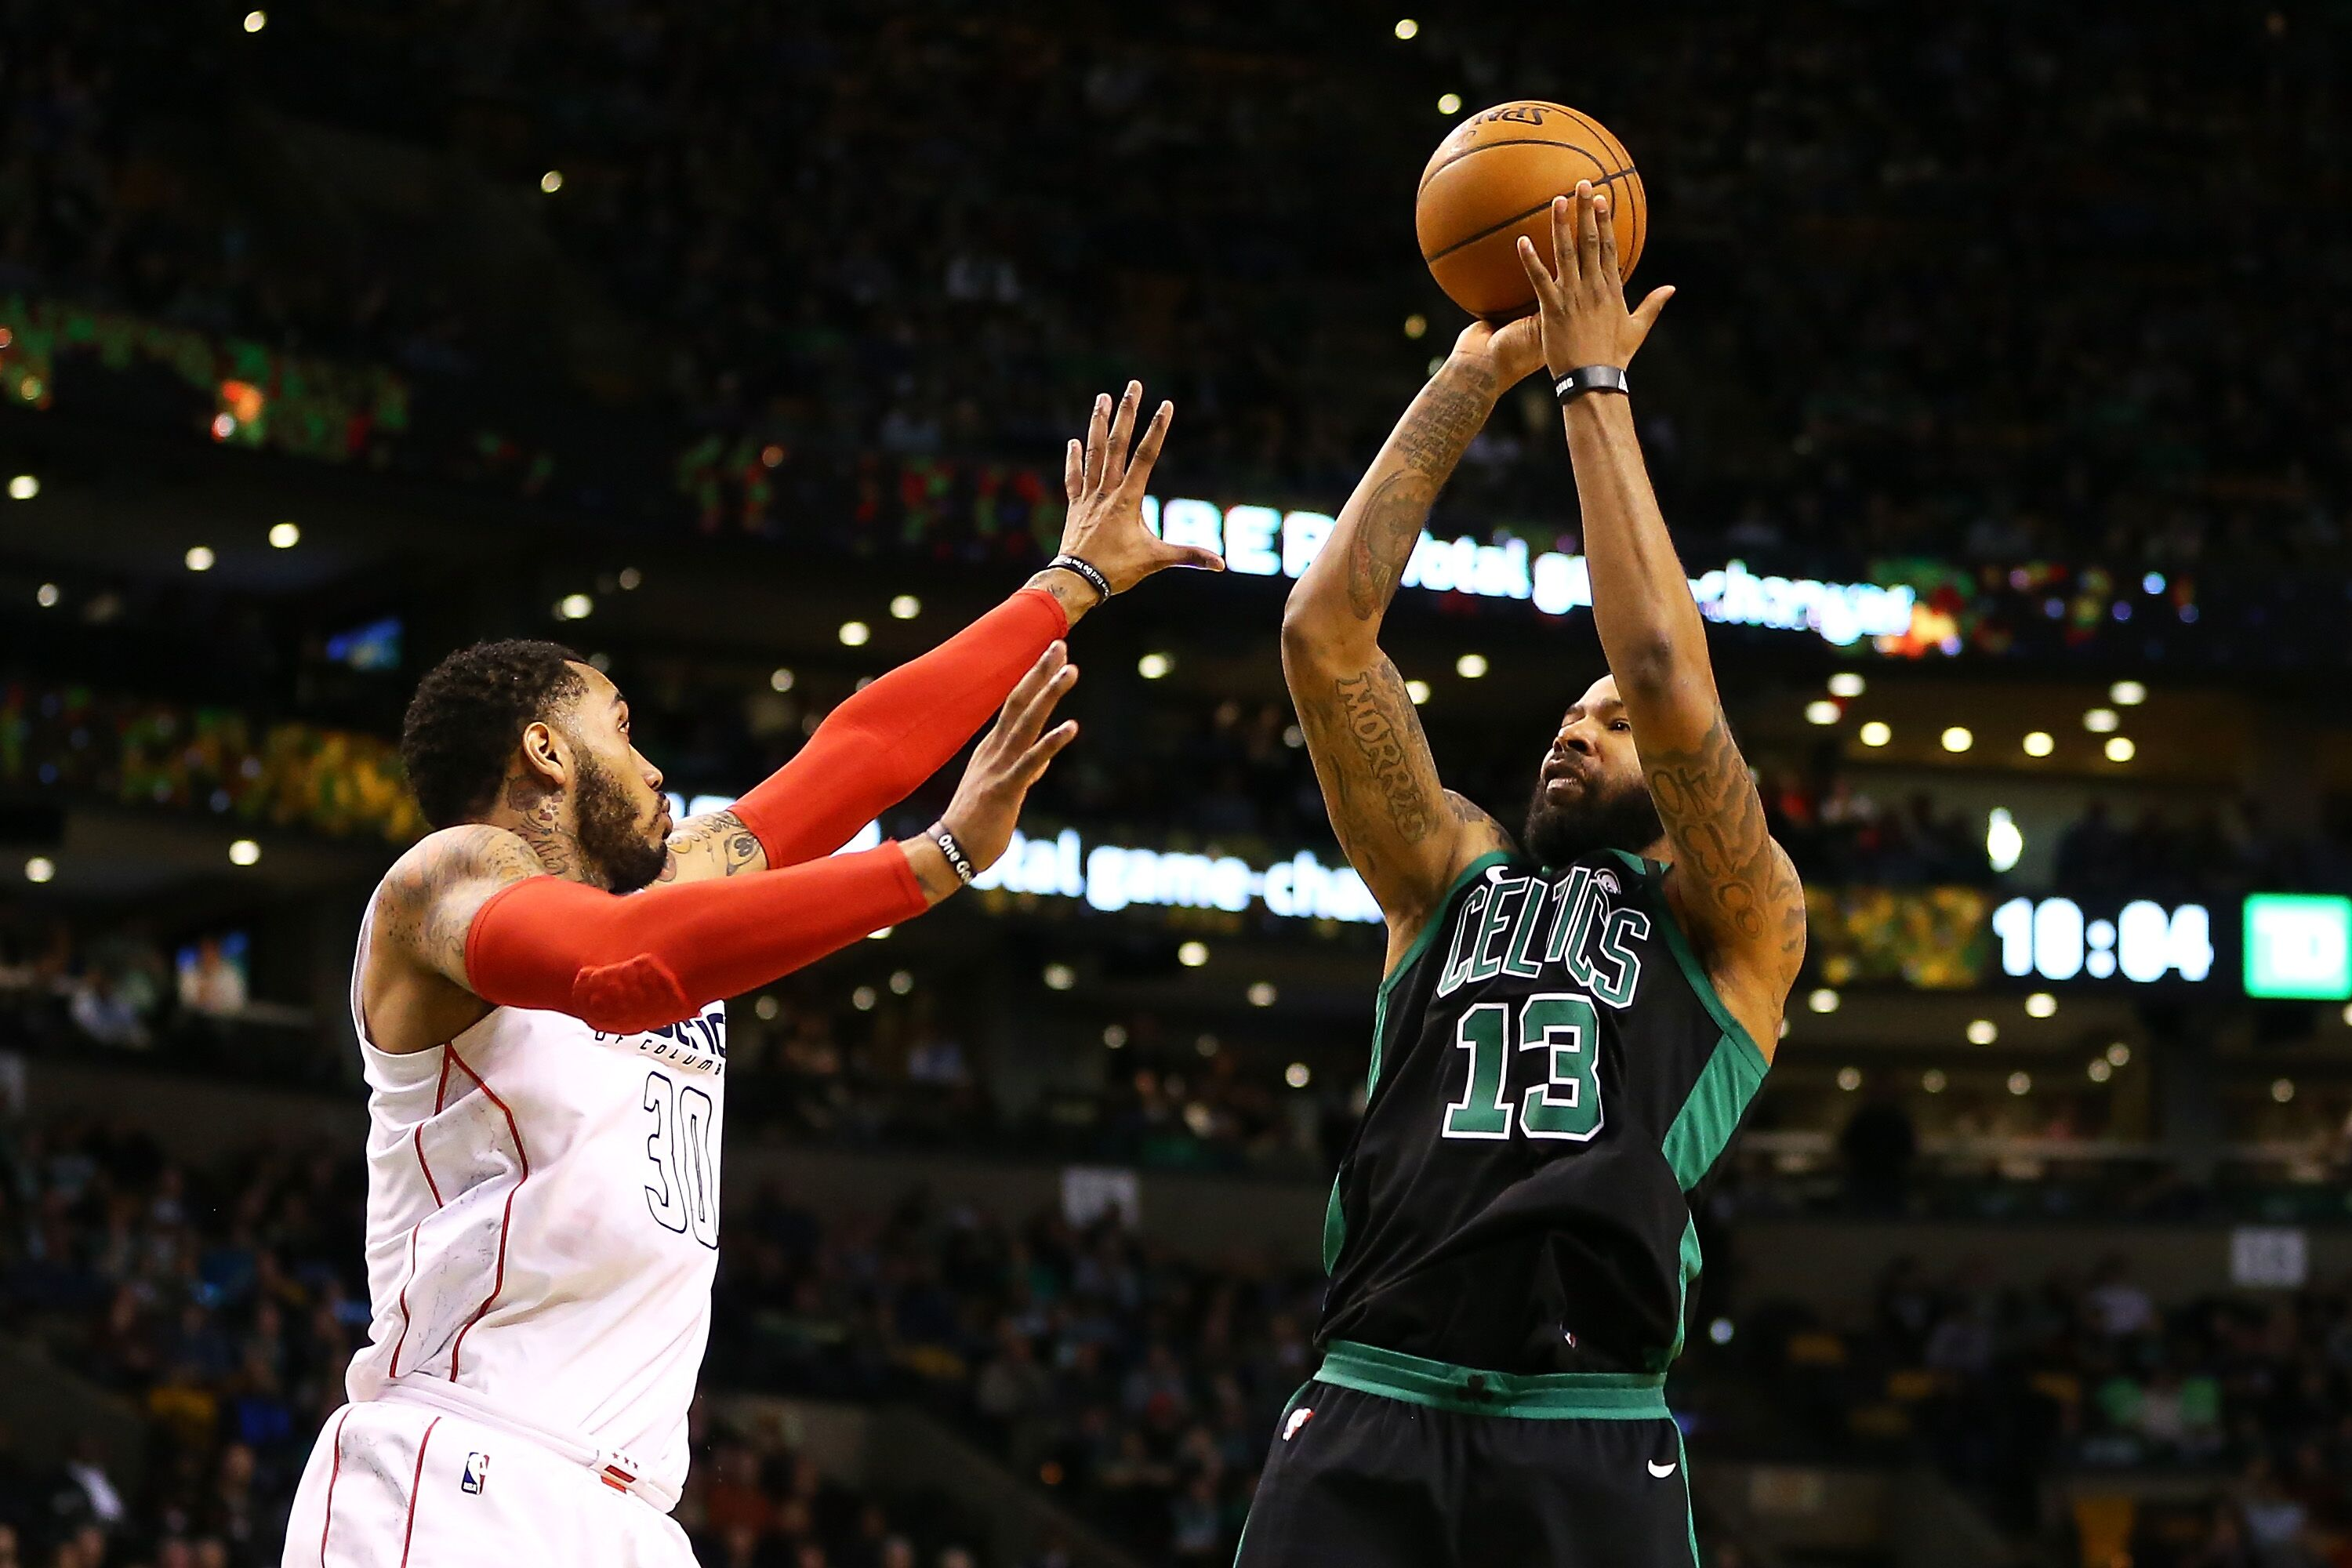 932148050-washington-wizards-v-boston-celtics.jpg